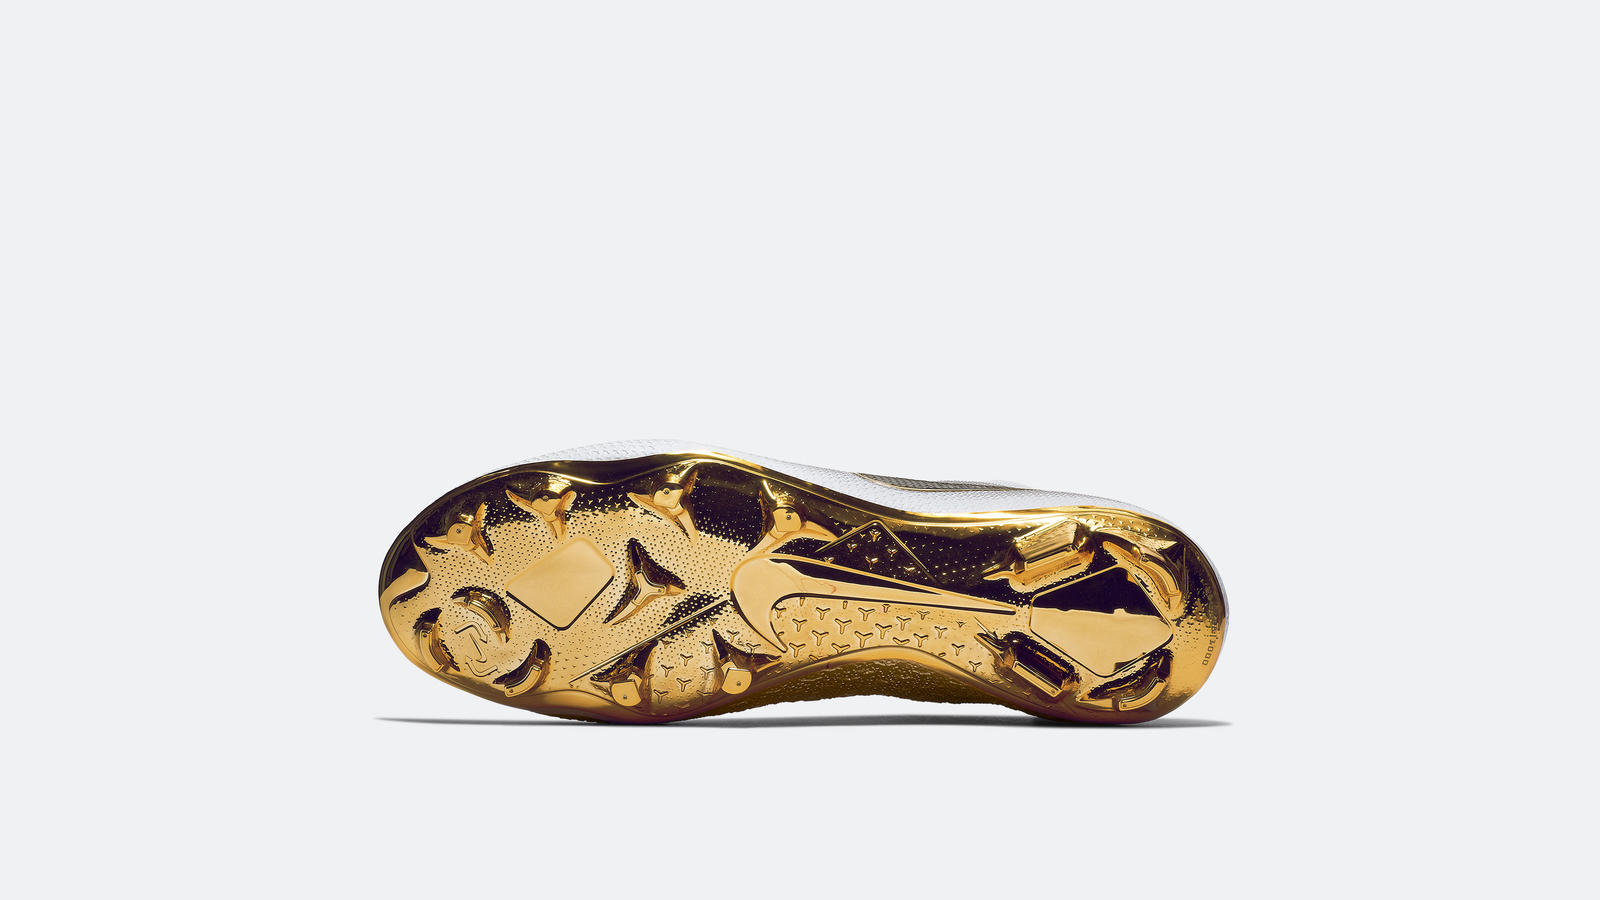 Nikefootball goldphantom 2018 re 2 hd 1600